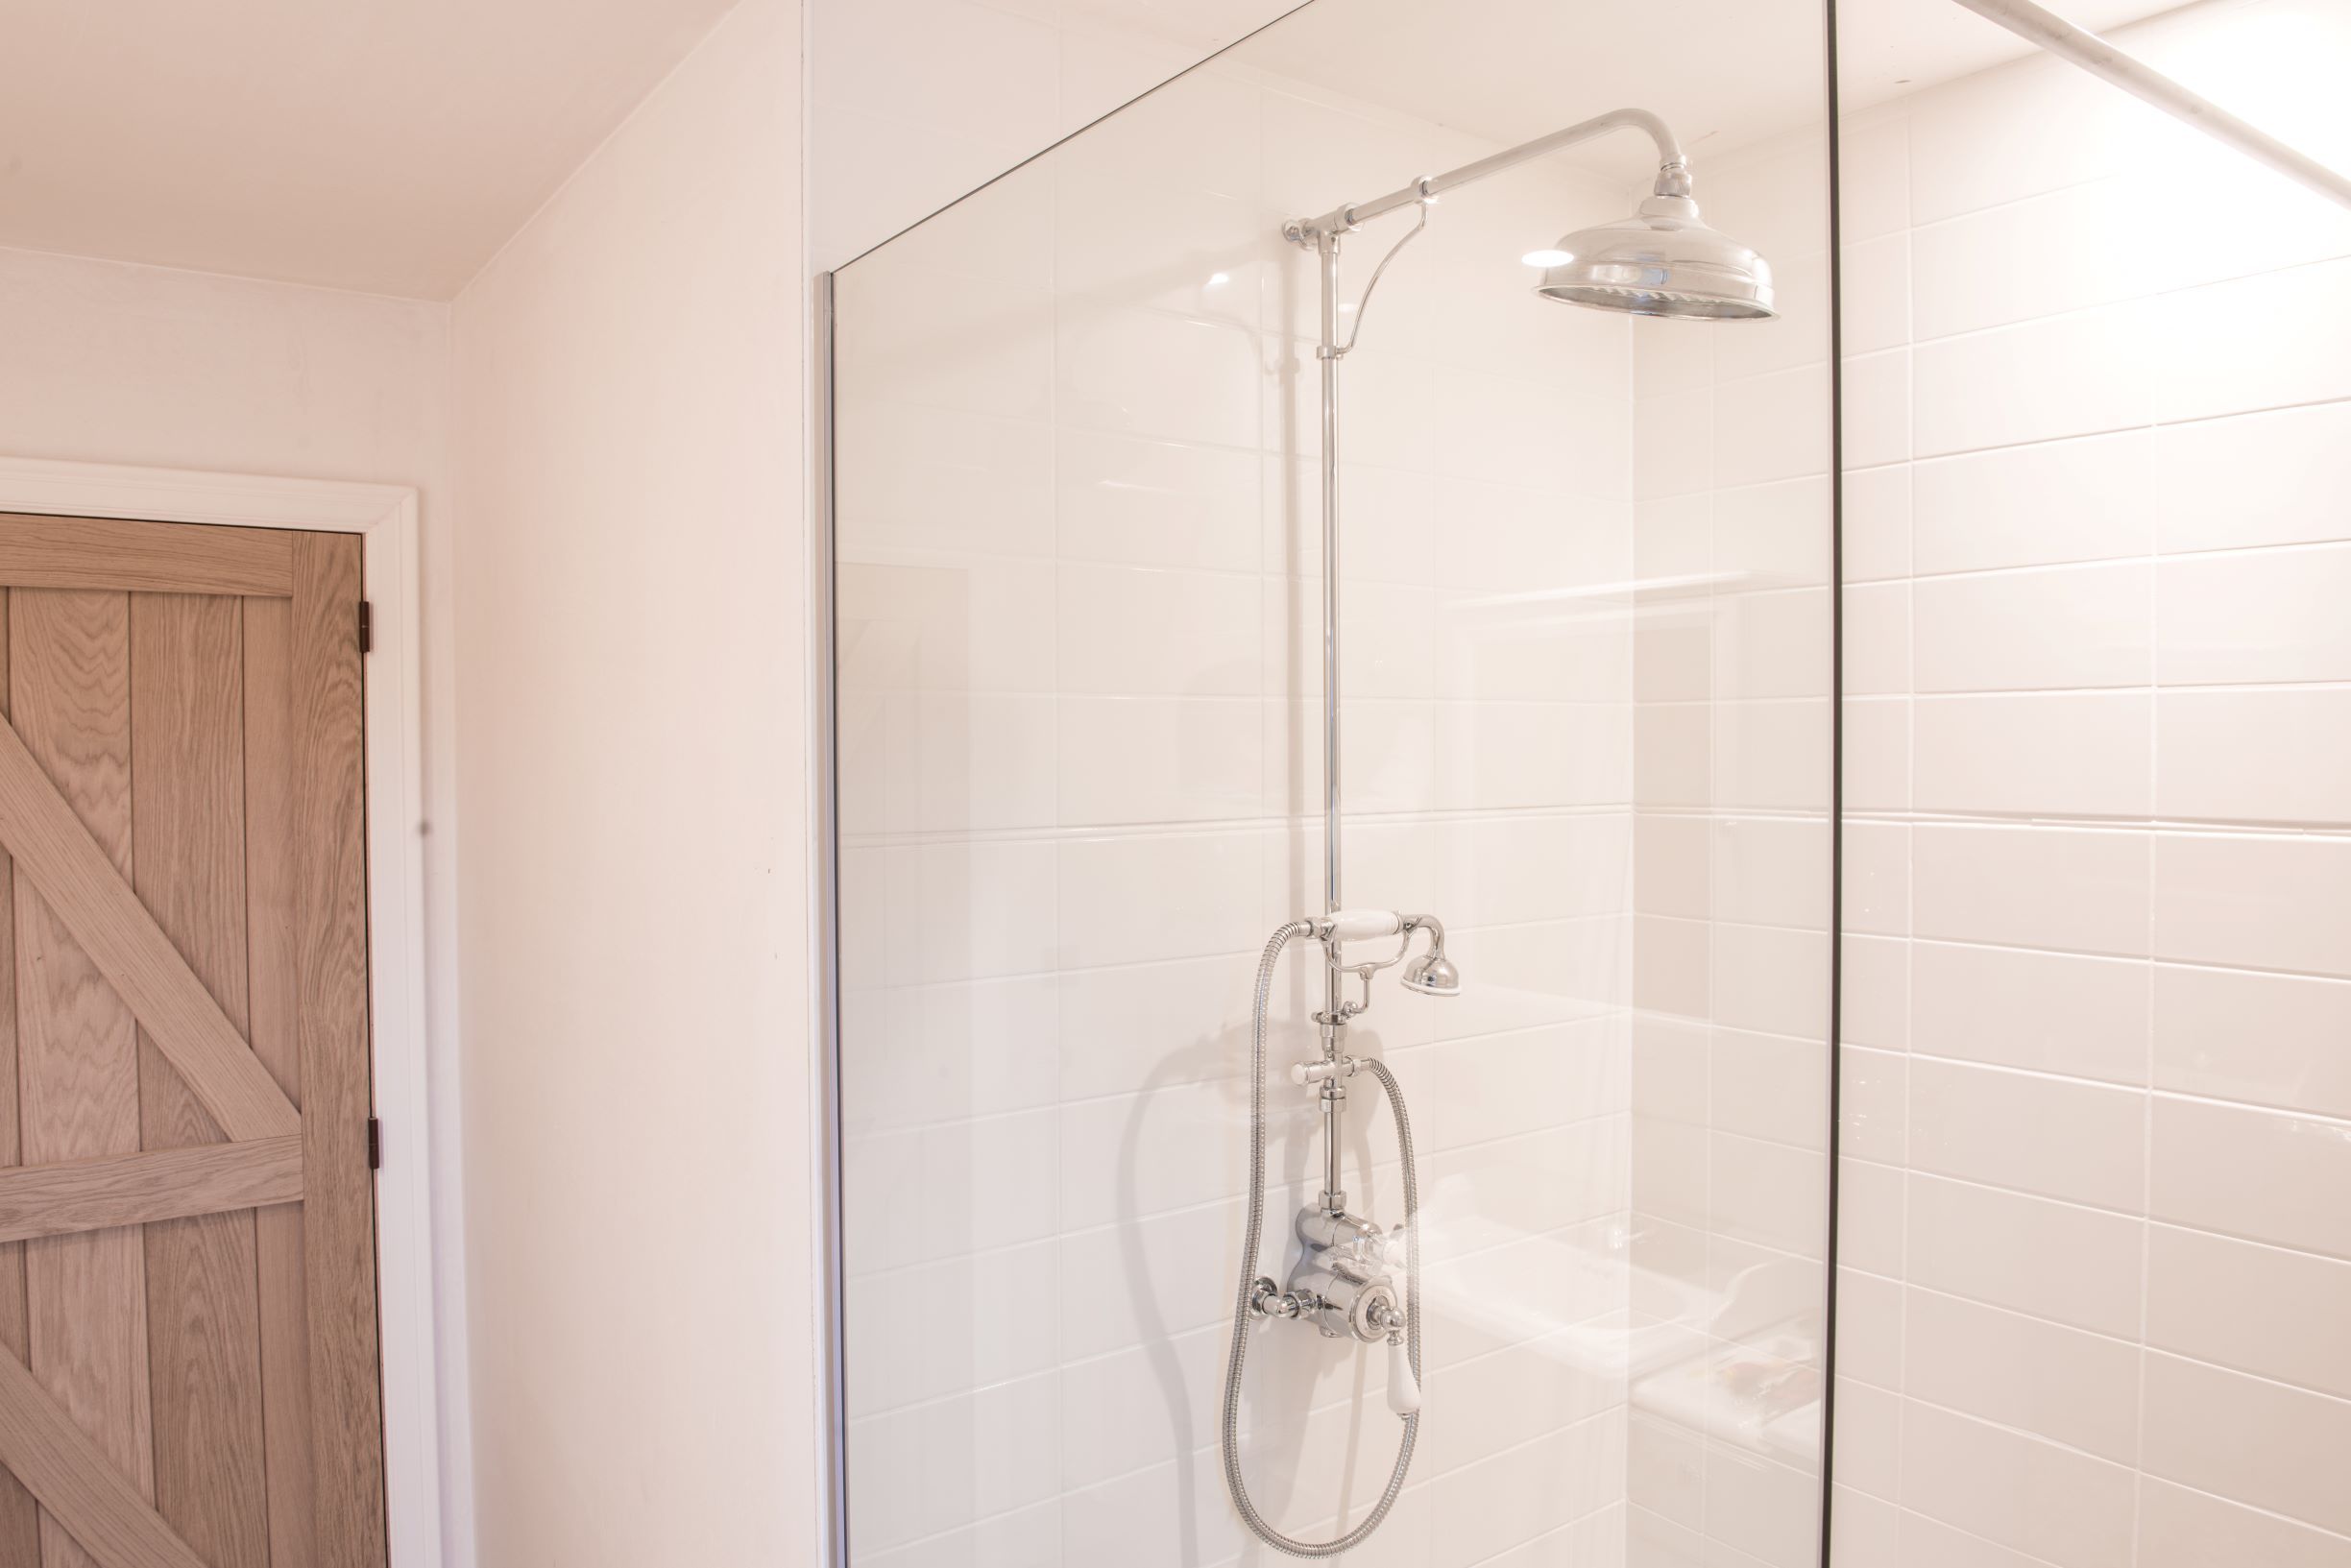 KMbadkamerkranen/Kenny_amp_Mason_Traditional_thermostatic_shower_2_1.jpg